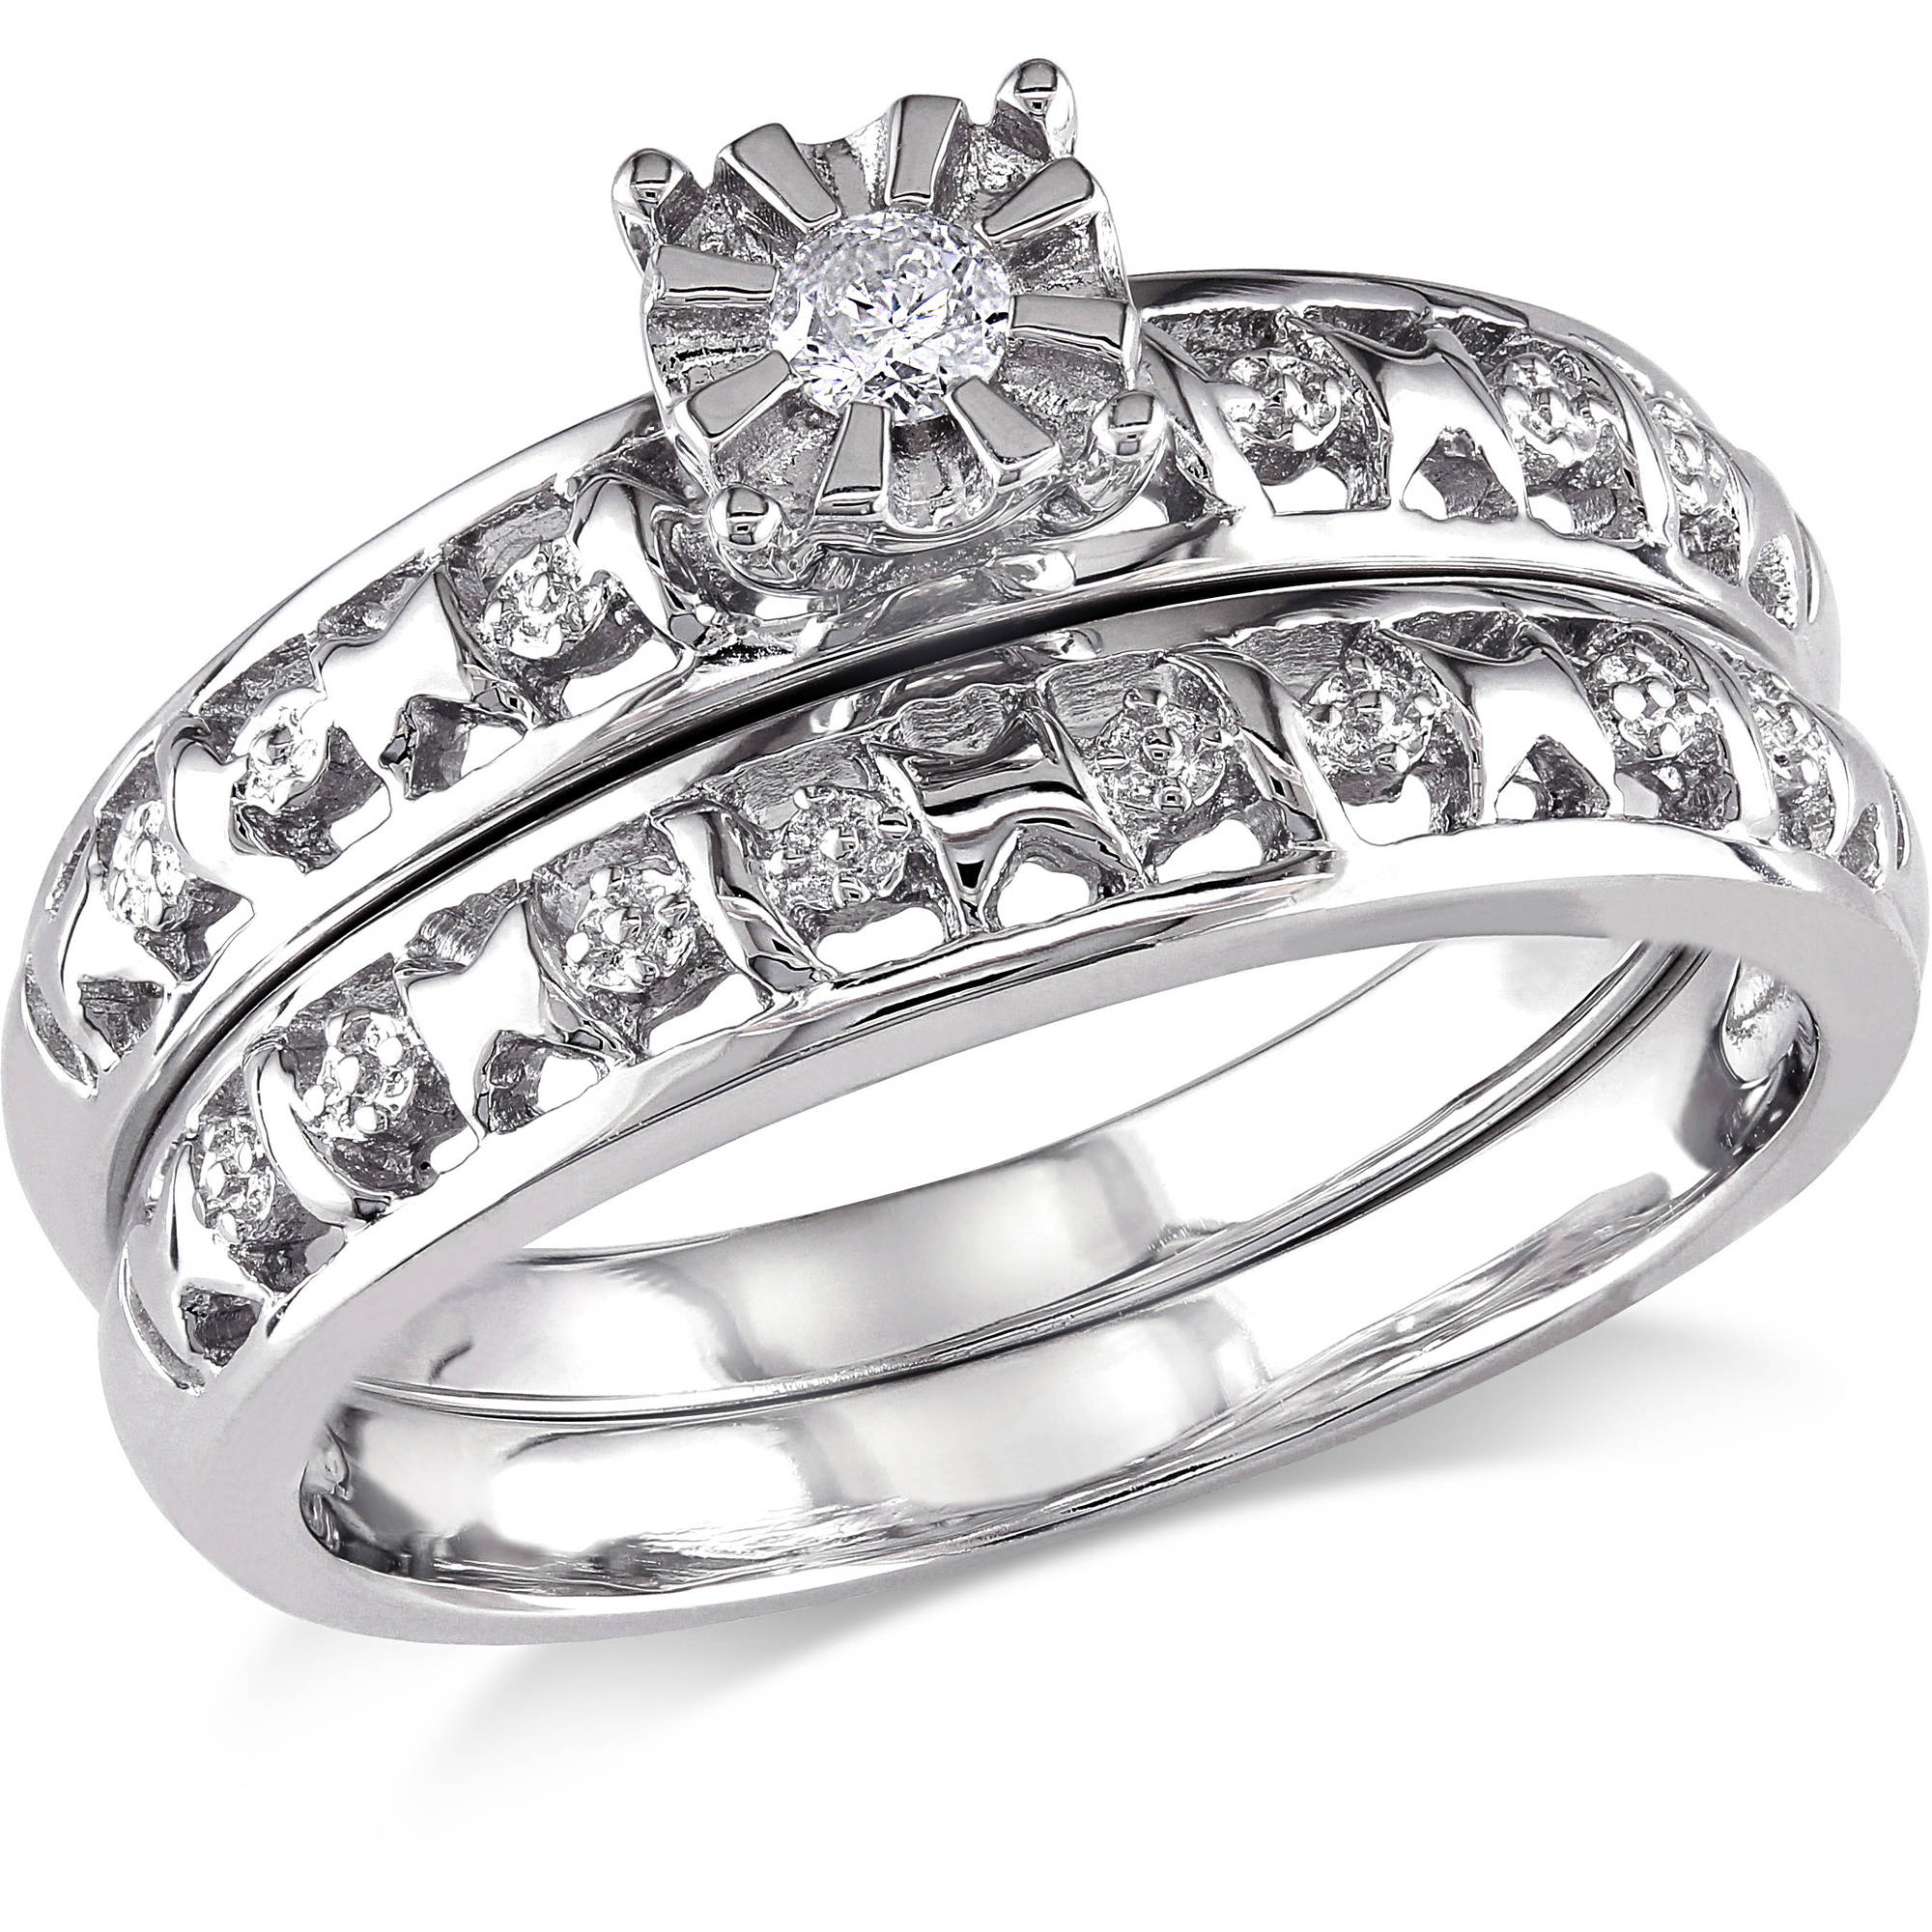 Miabella Round Diamond Accent Bridal Ring Set in Sterling Silver